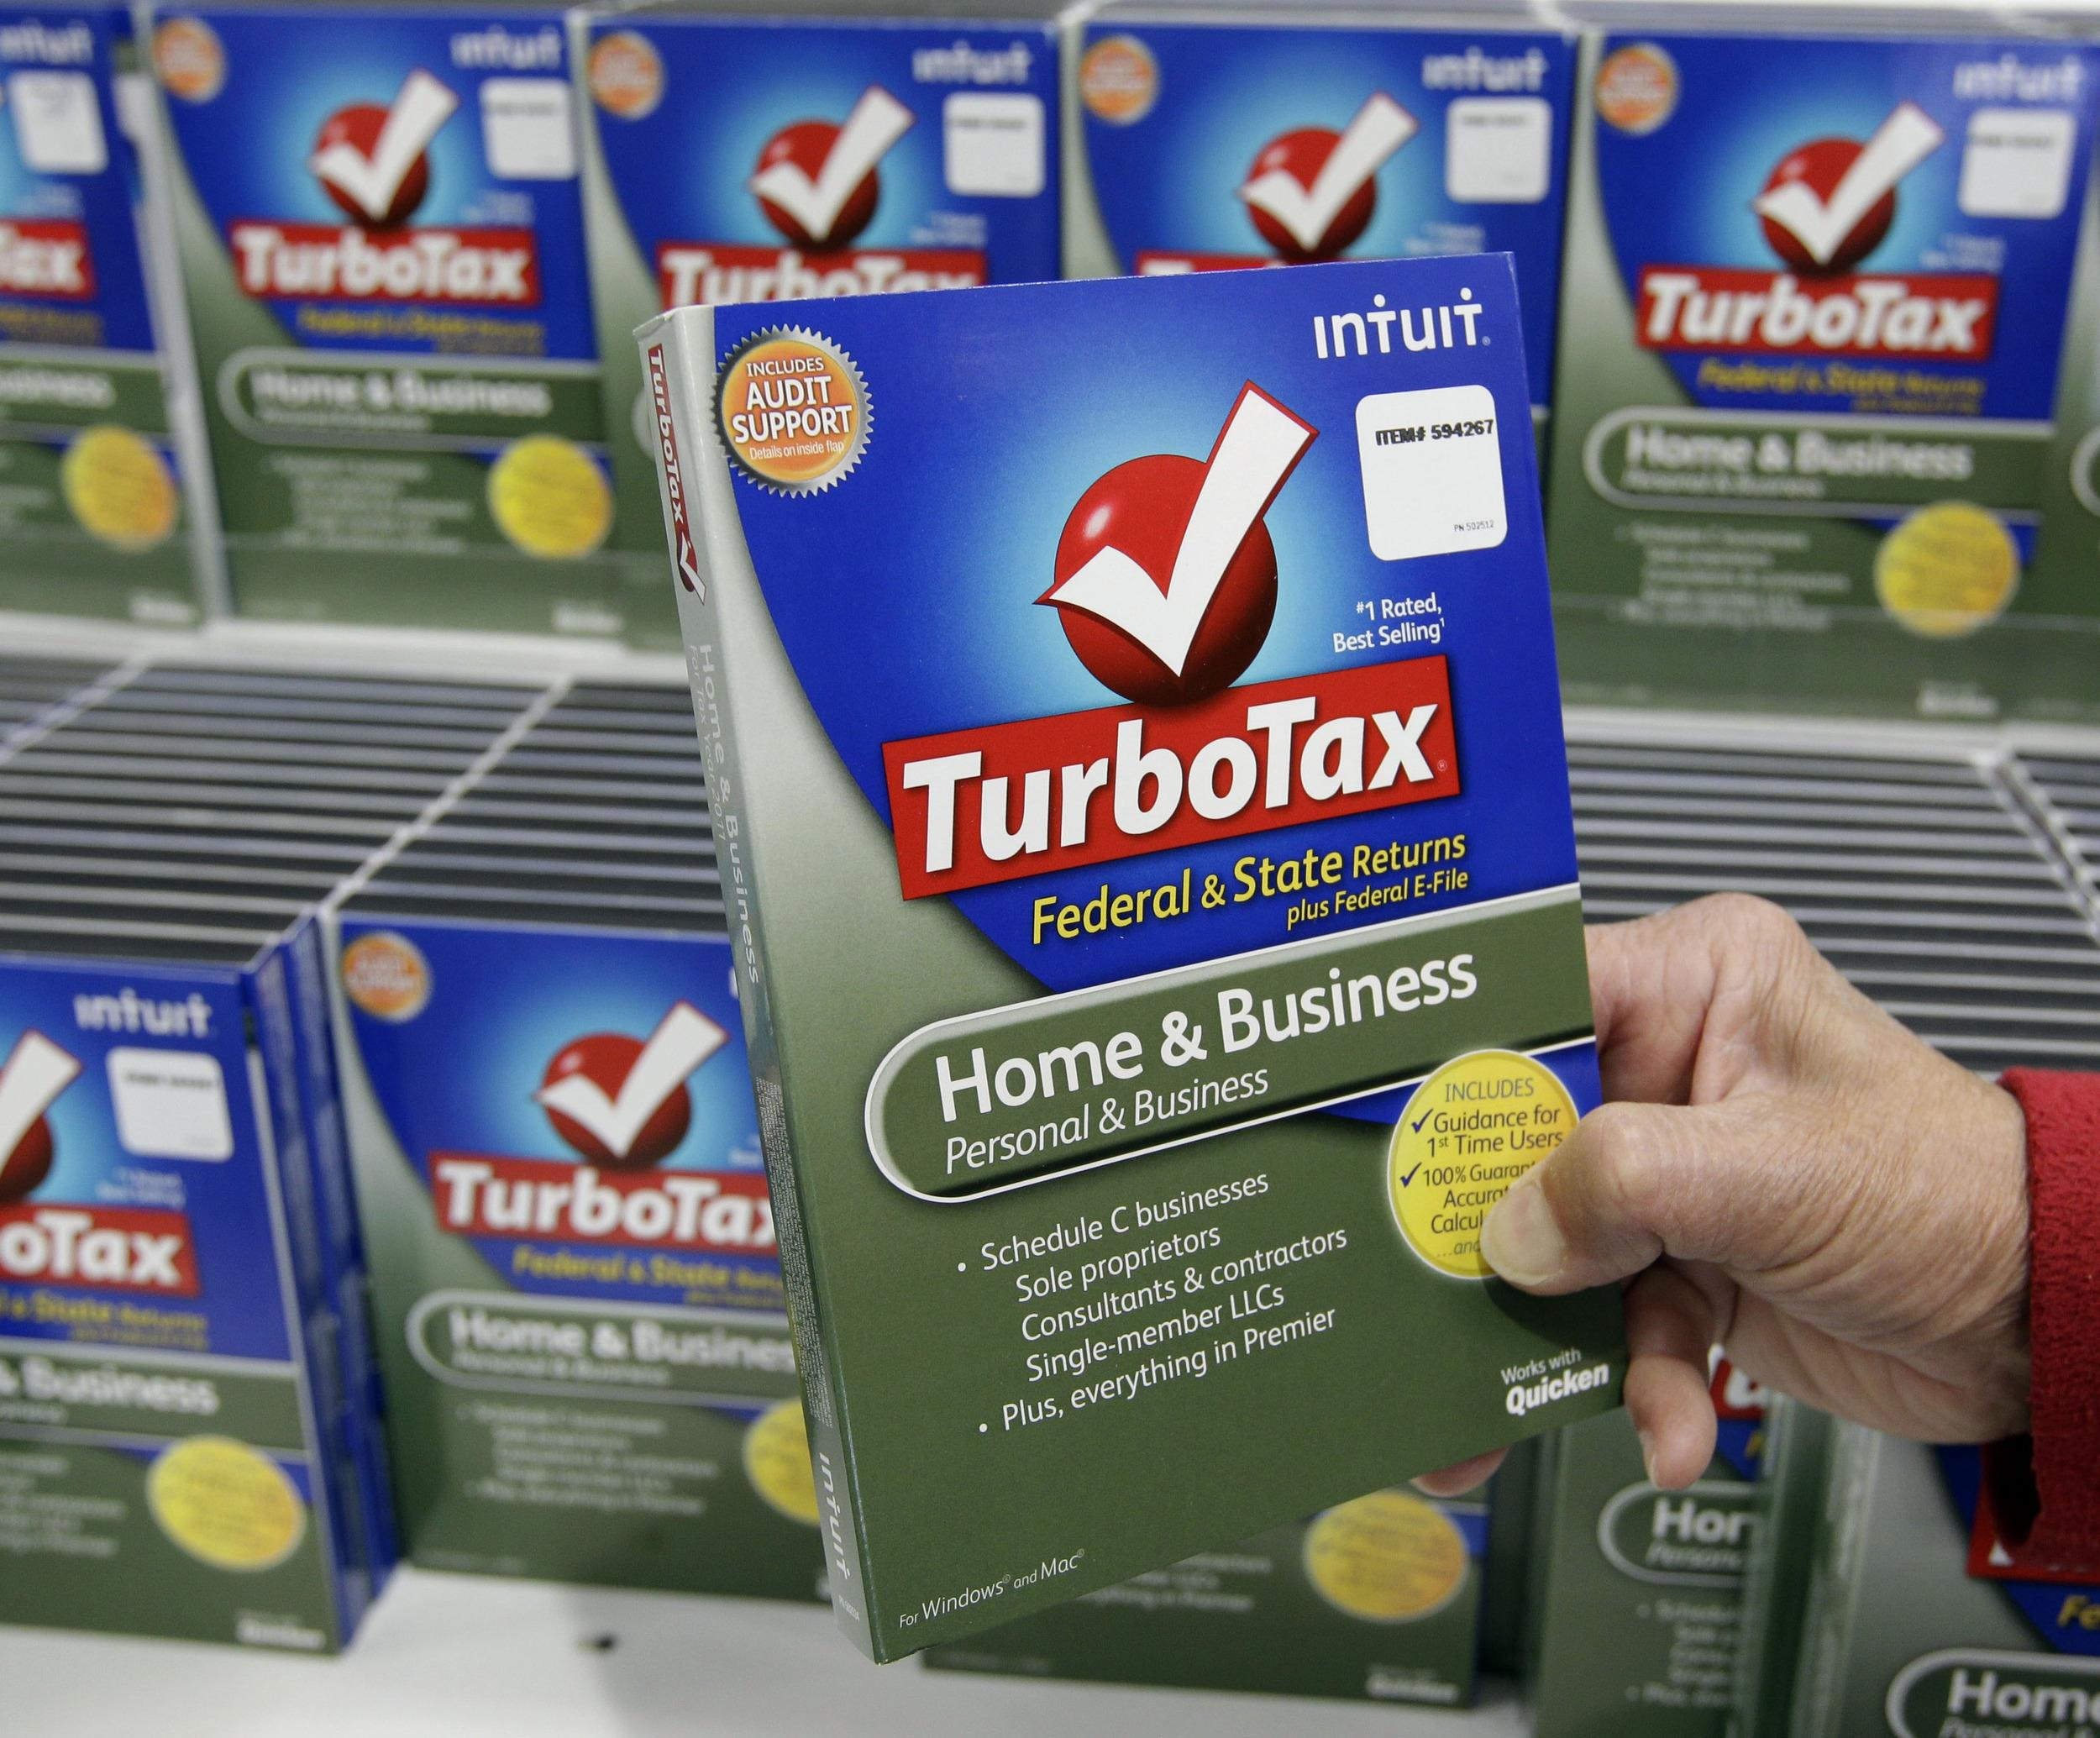 Turbotax online home & business